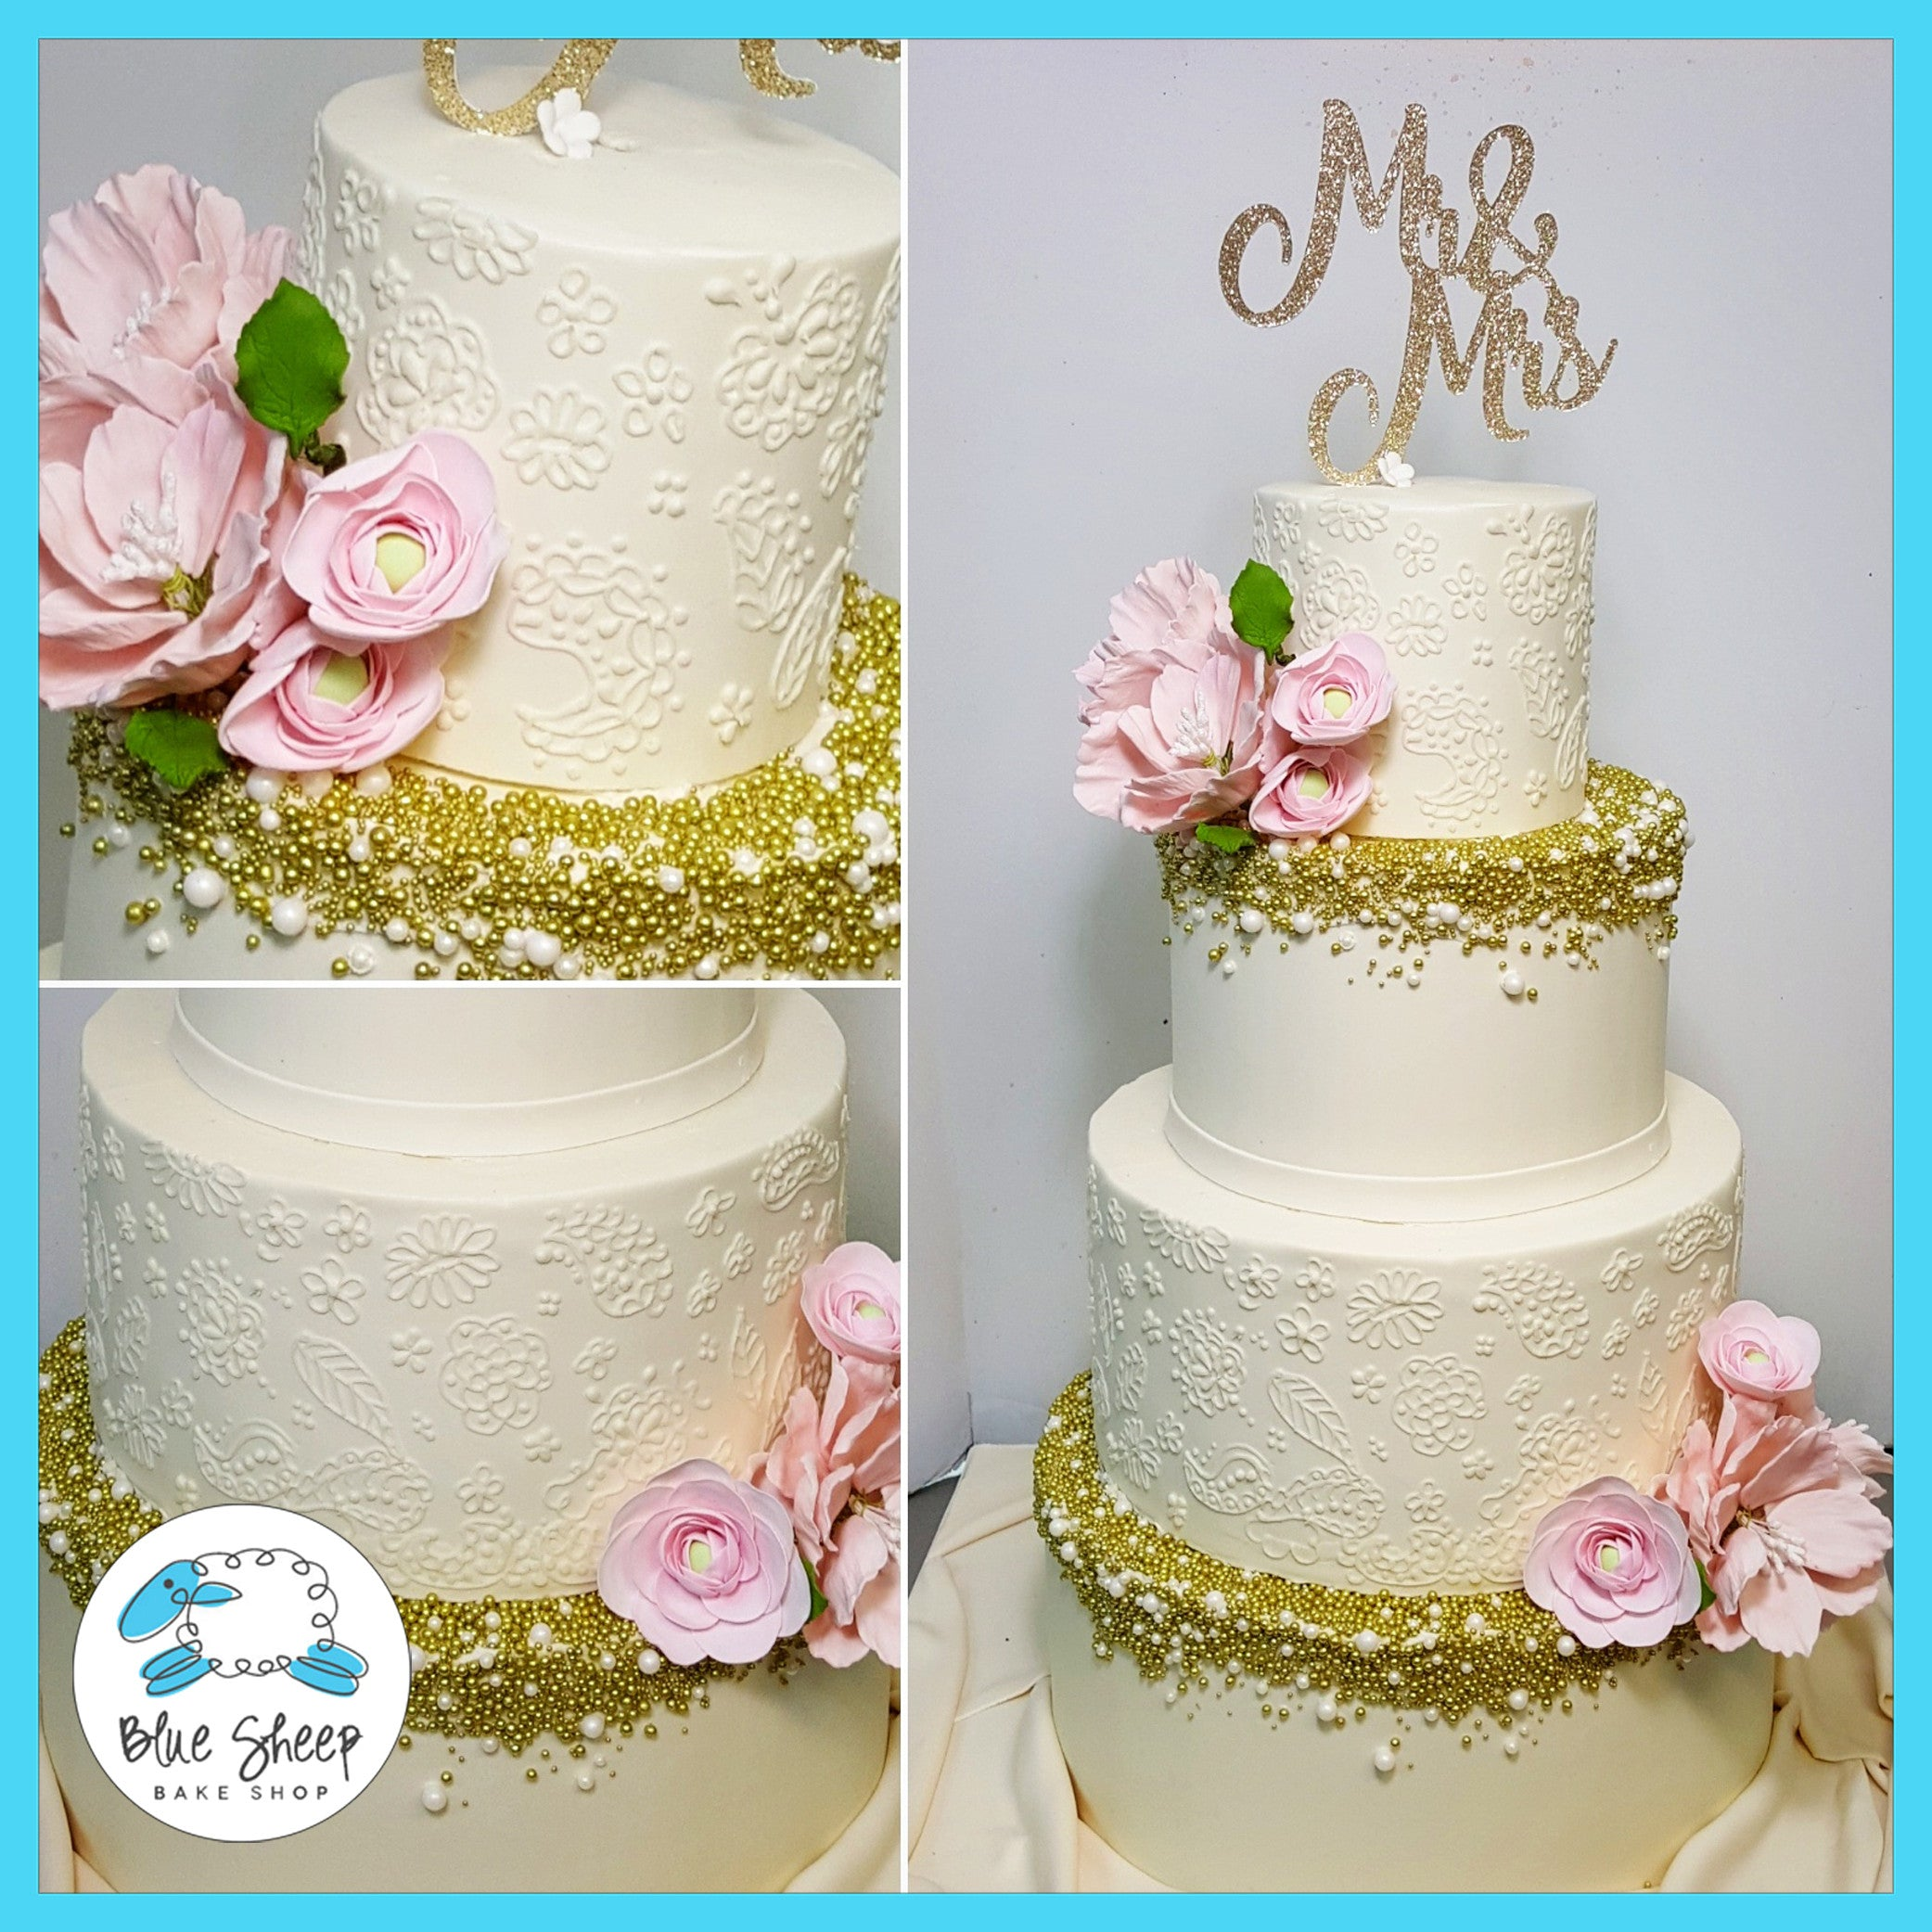 Henna Wedding Cake with Gold and Ivory Pearls | Blue Sheep Bake Shop